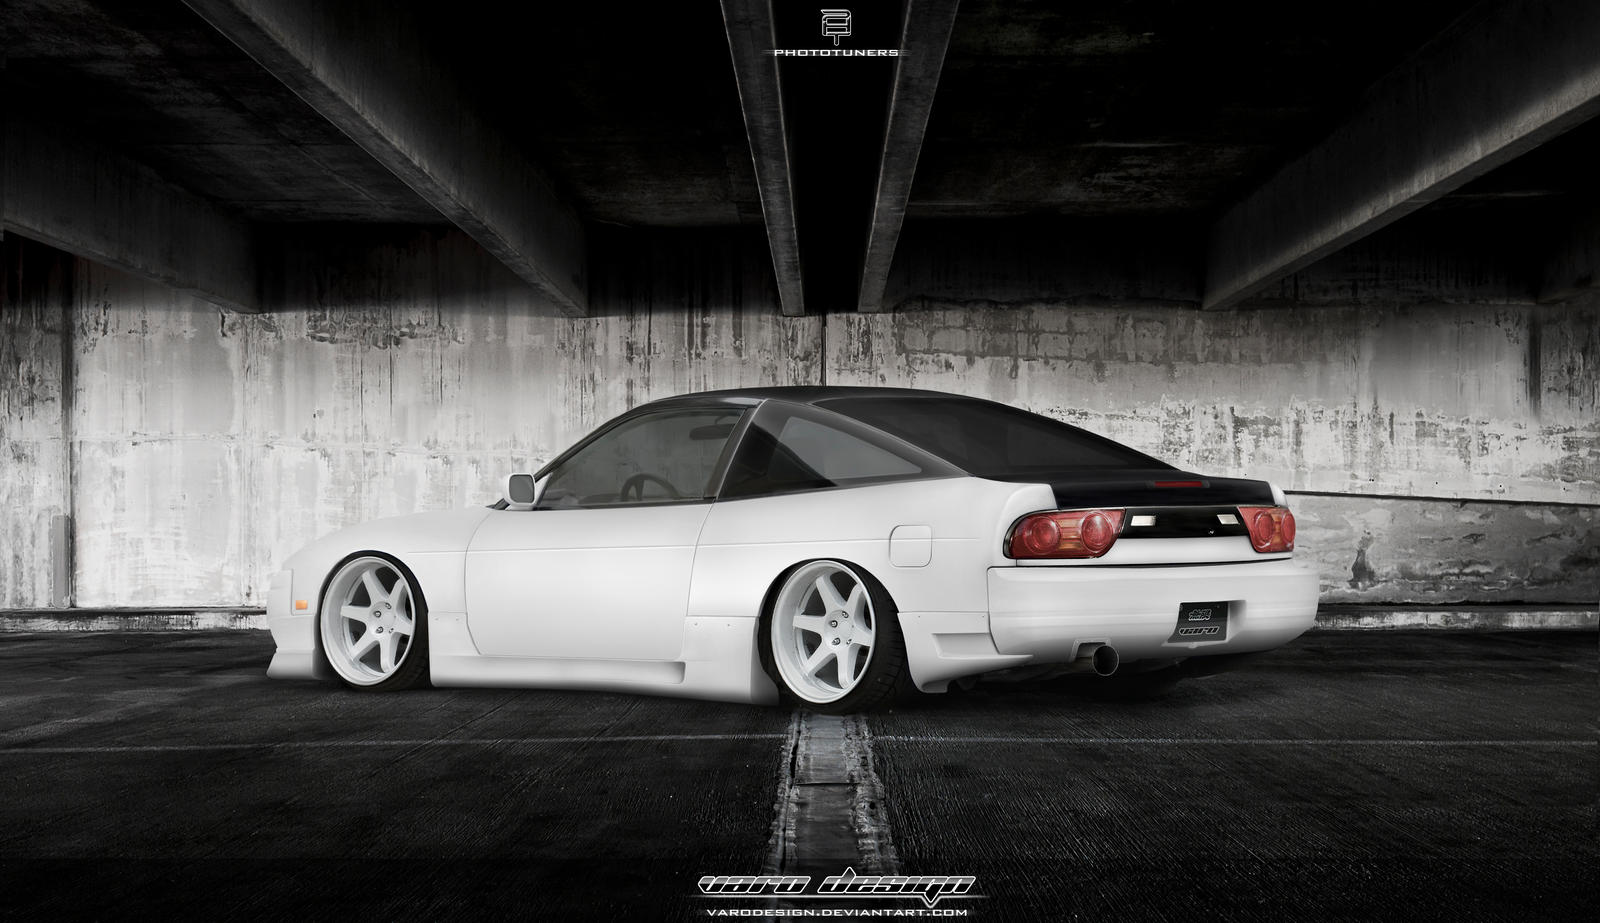 Nissan 180sx by VaroDesign on deviantART